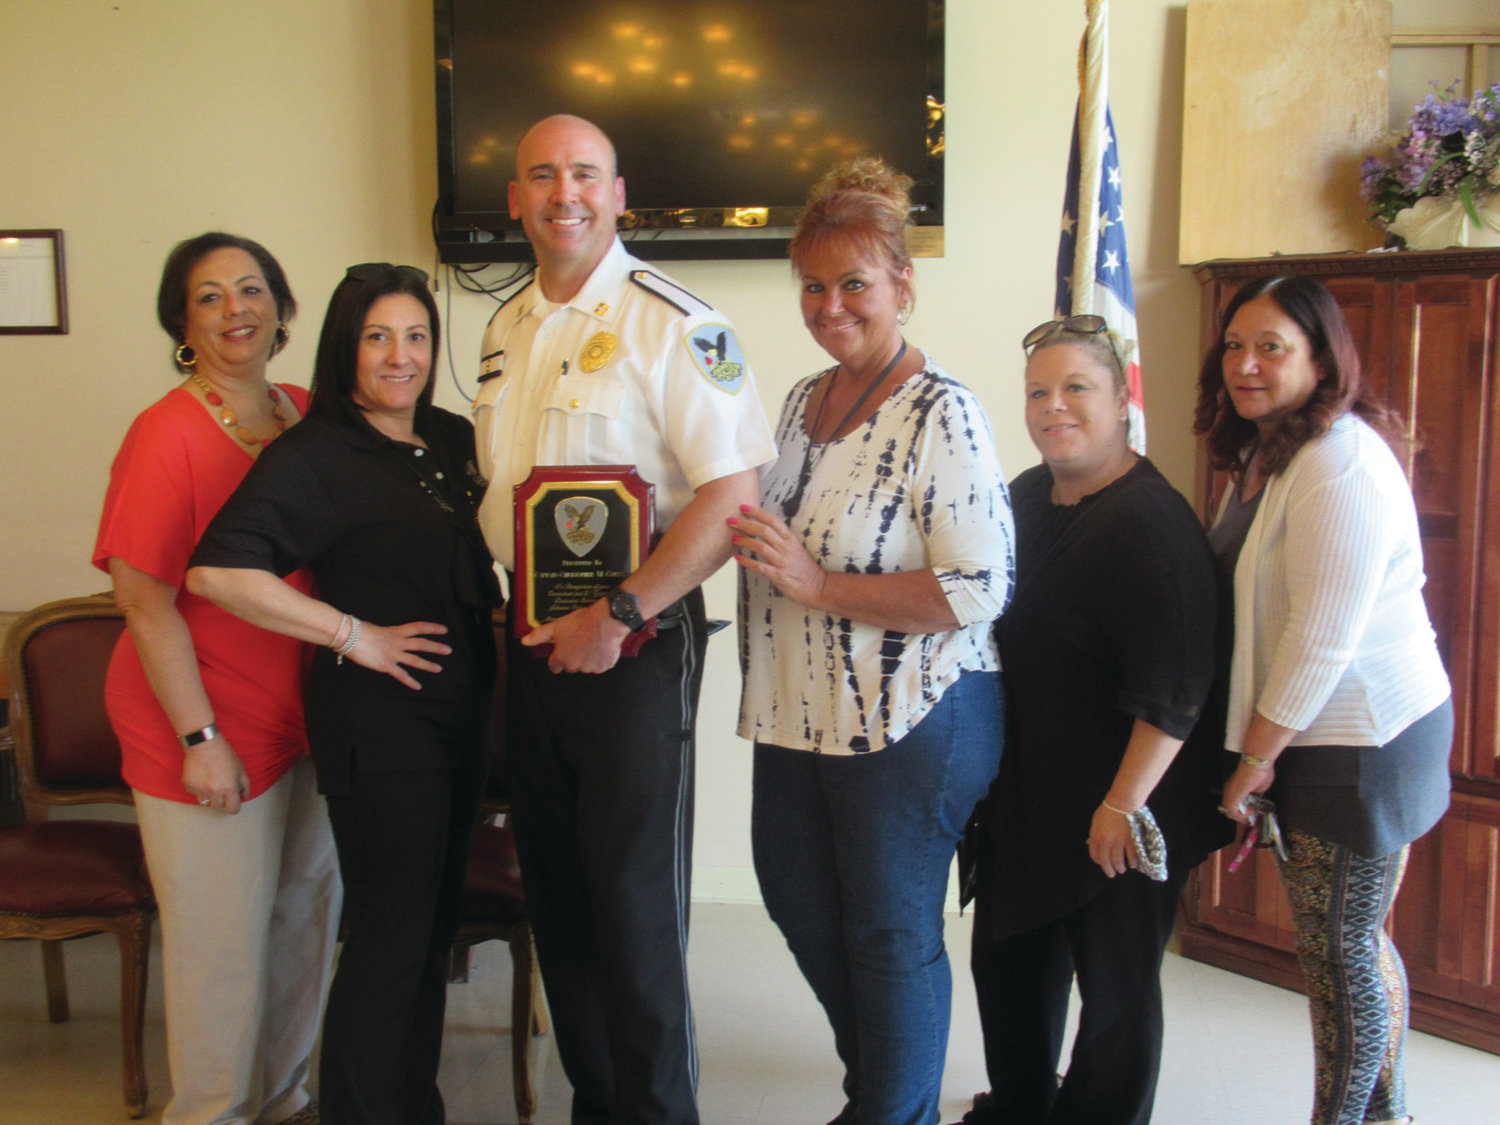 SUPER SUPPORTERS: Among the many JPD staff members who wished Capt. Chris Correia well at last Friday's special retirement ceremony were, from left, Lori Anderson, Michelle DePetrillo, Michaela Ballirano, Toni Mallane and Kathy Bedrosian.